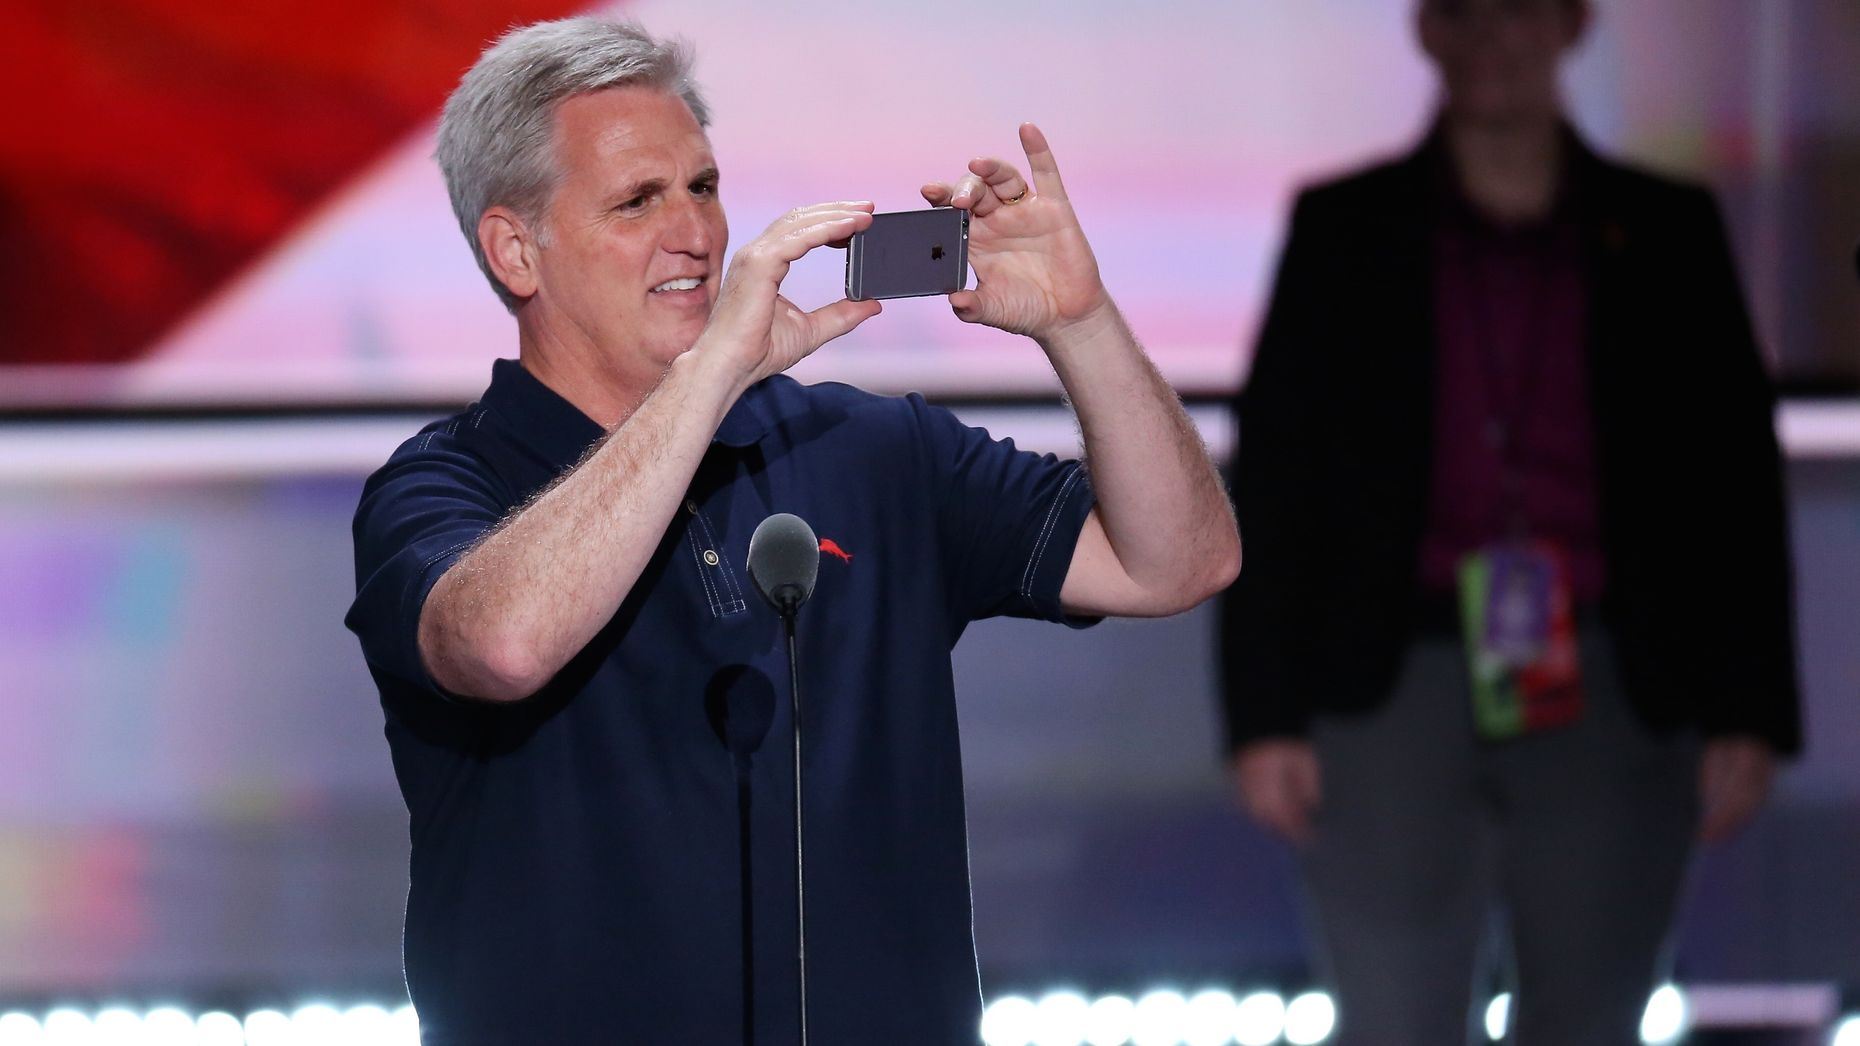 House Majority Leader Kevin McCarthy at the Republican National Convention. Photo by Bloomberg.